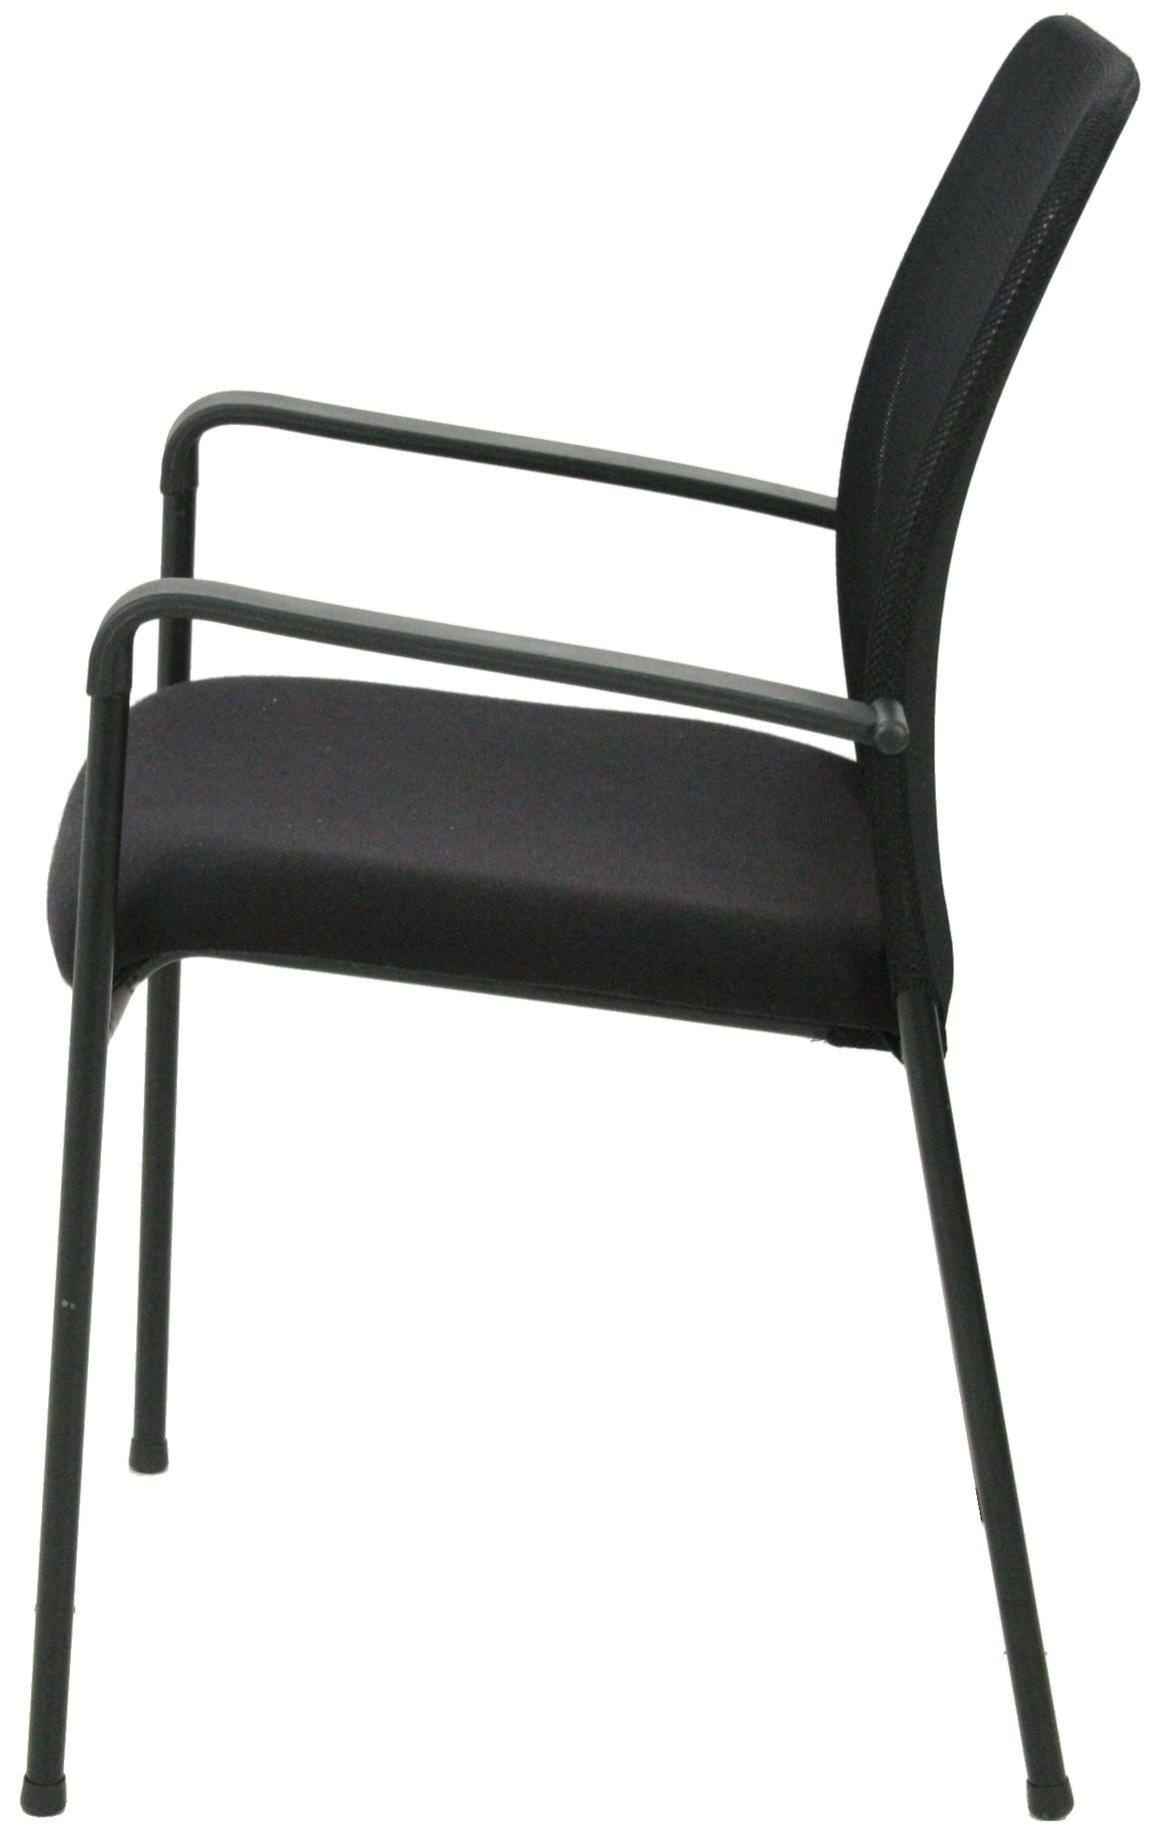 Images of Upholstered Stacking Chair with Mesh Back